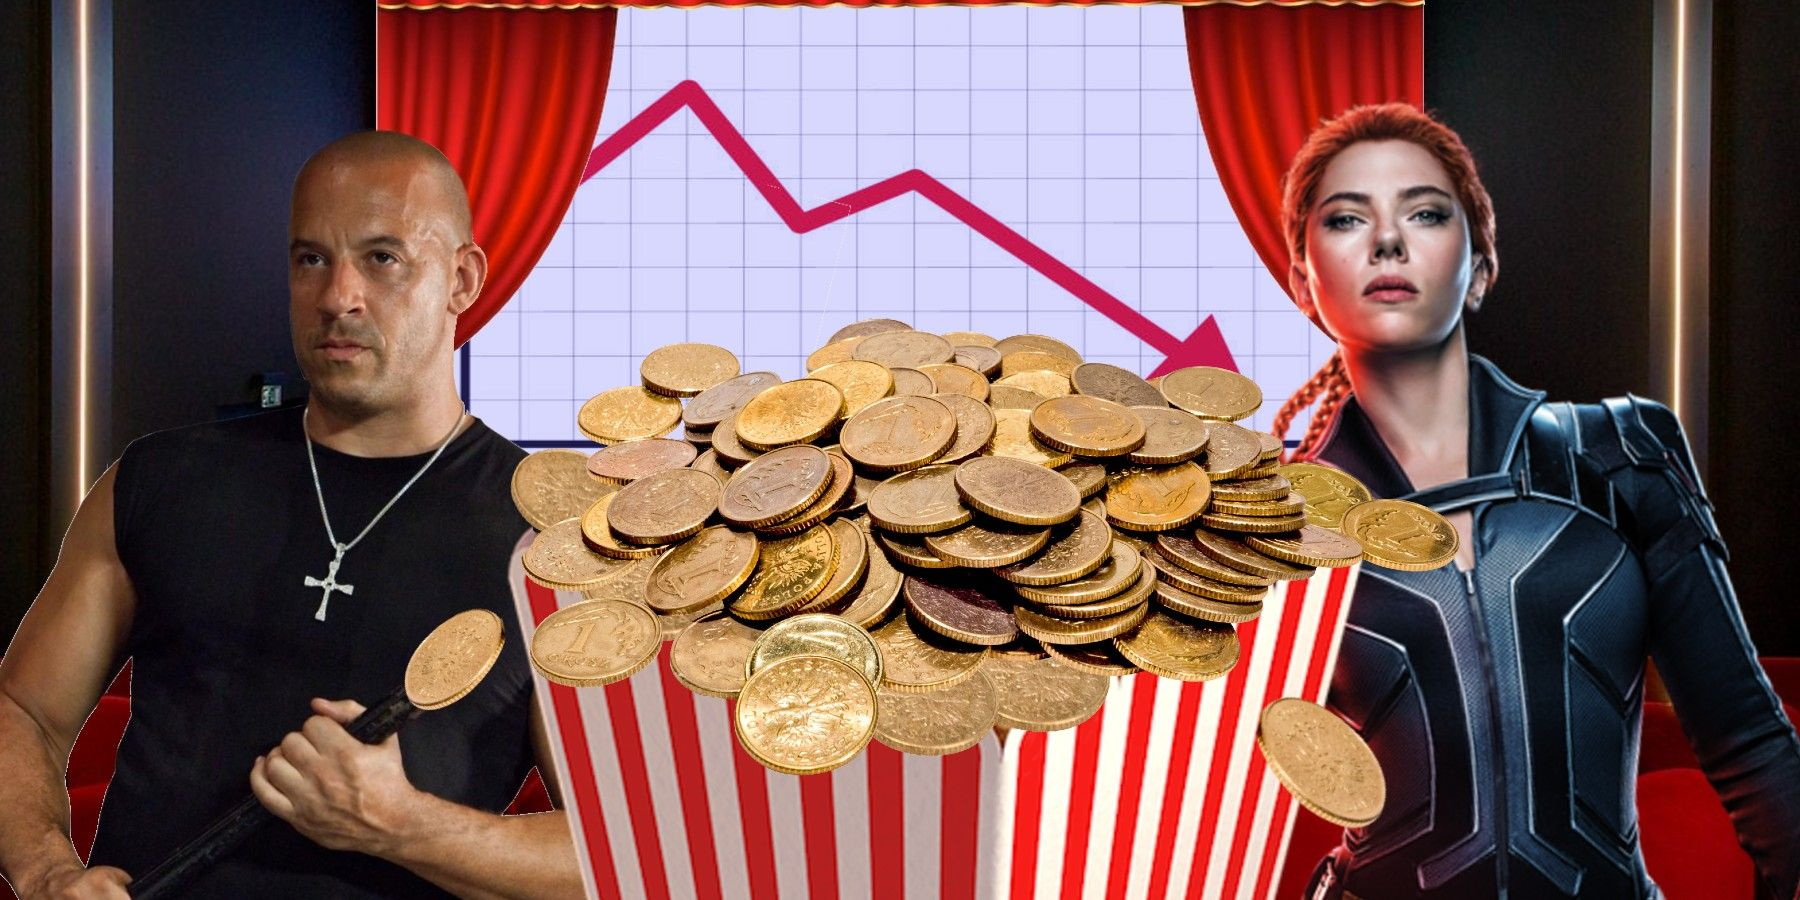 Movie Box Office Numbers Will Never Be The Same | Screen Rant